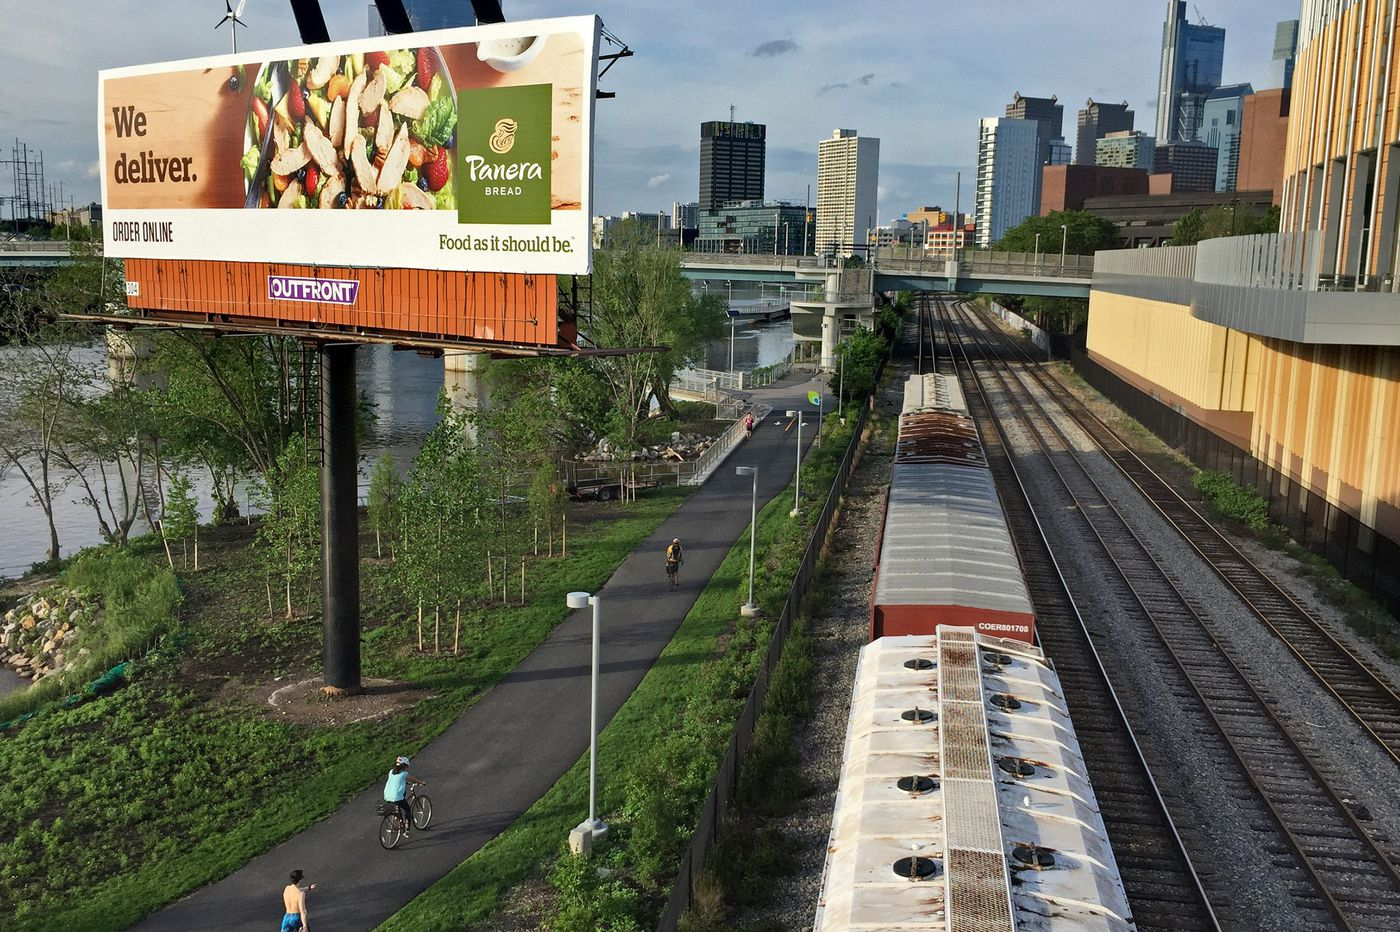 Billboard company Outfront said to be resuming push for big digital display beside Fairmount Park